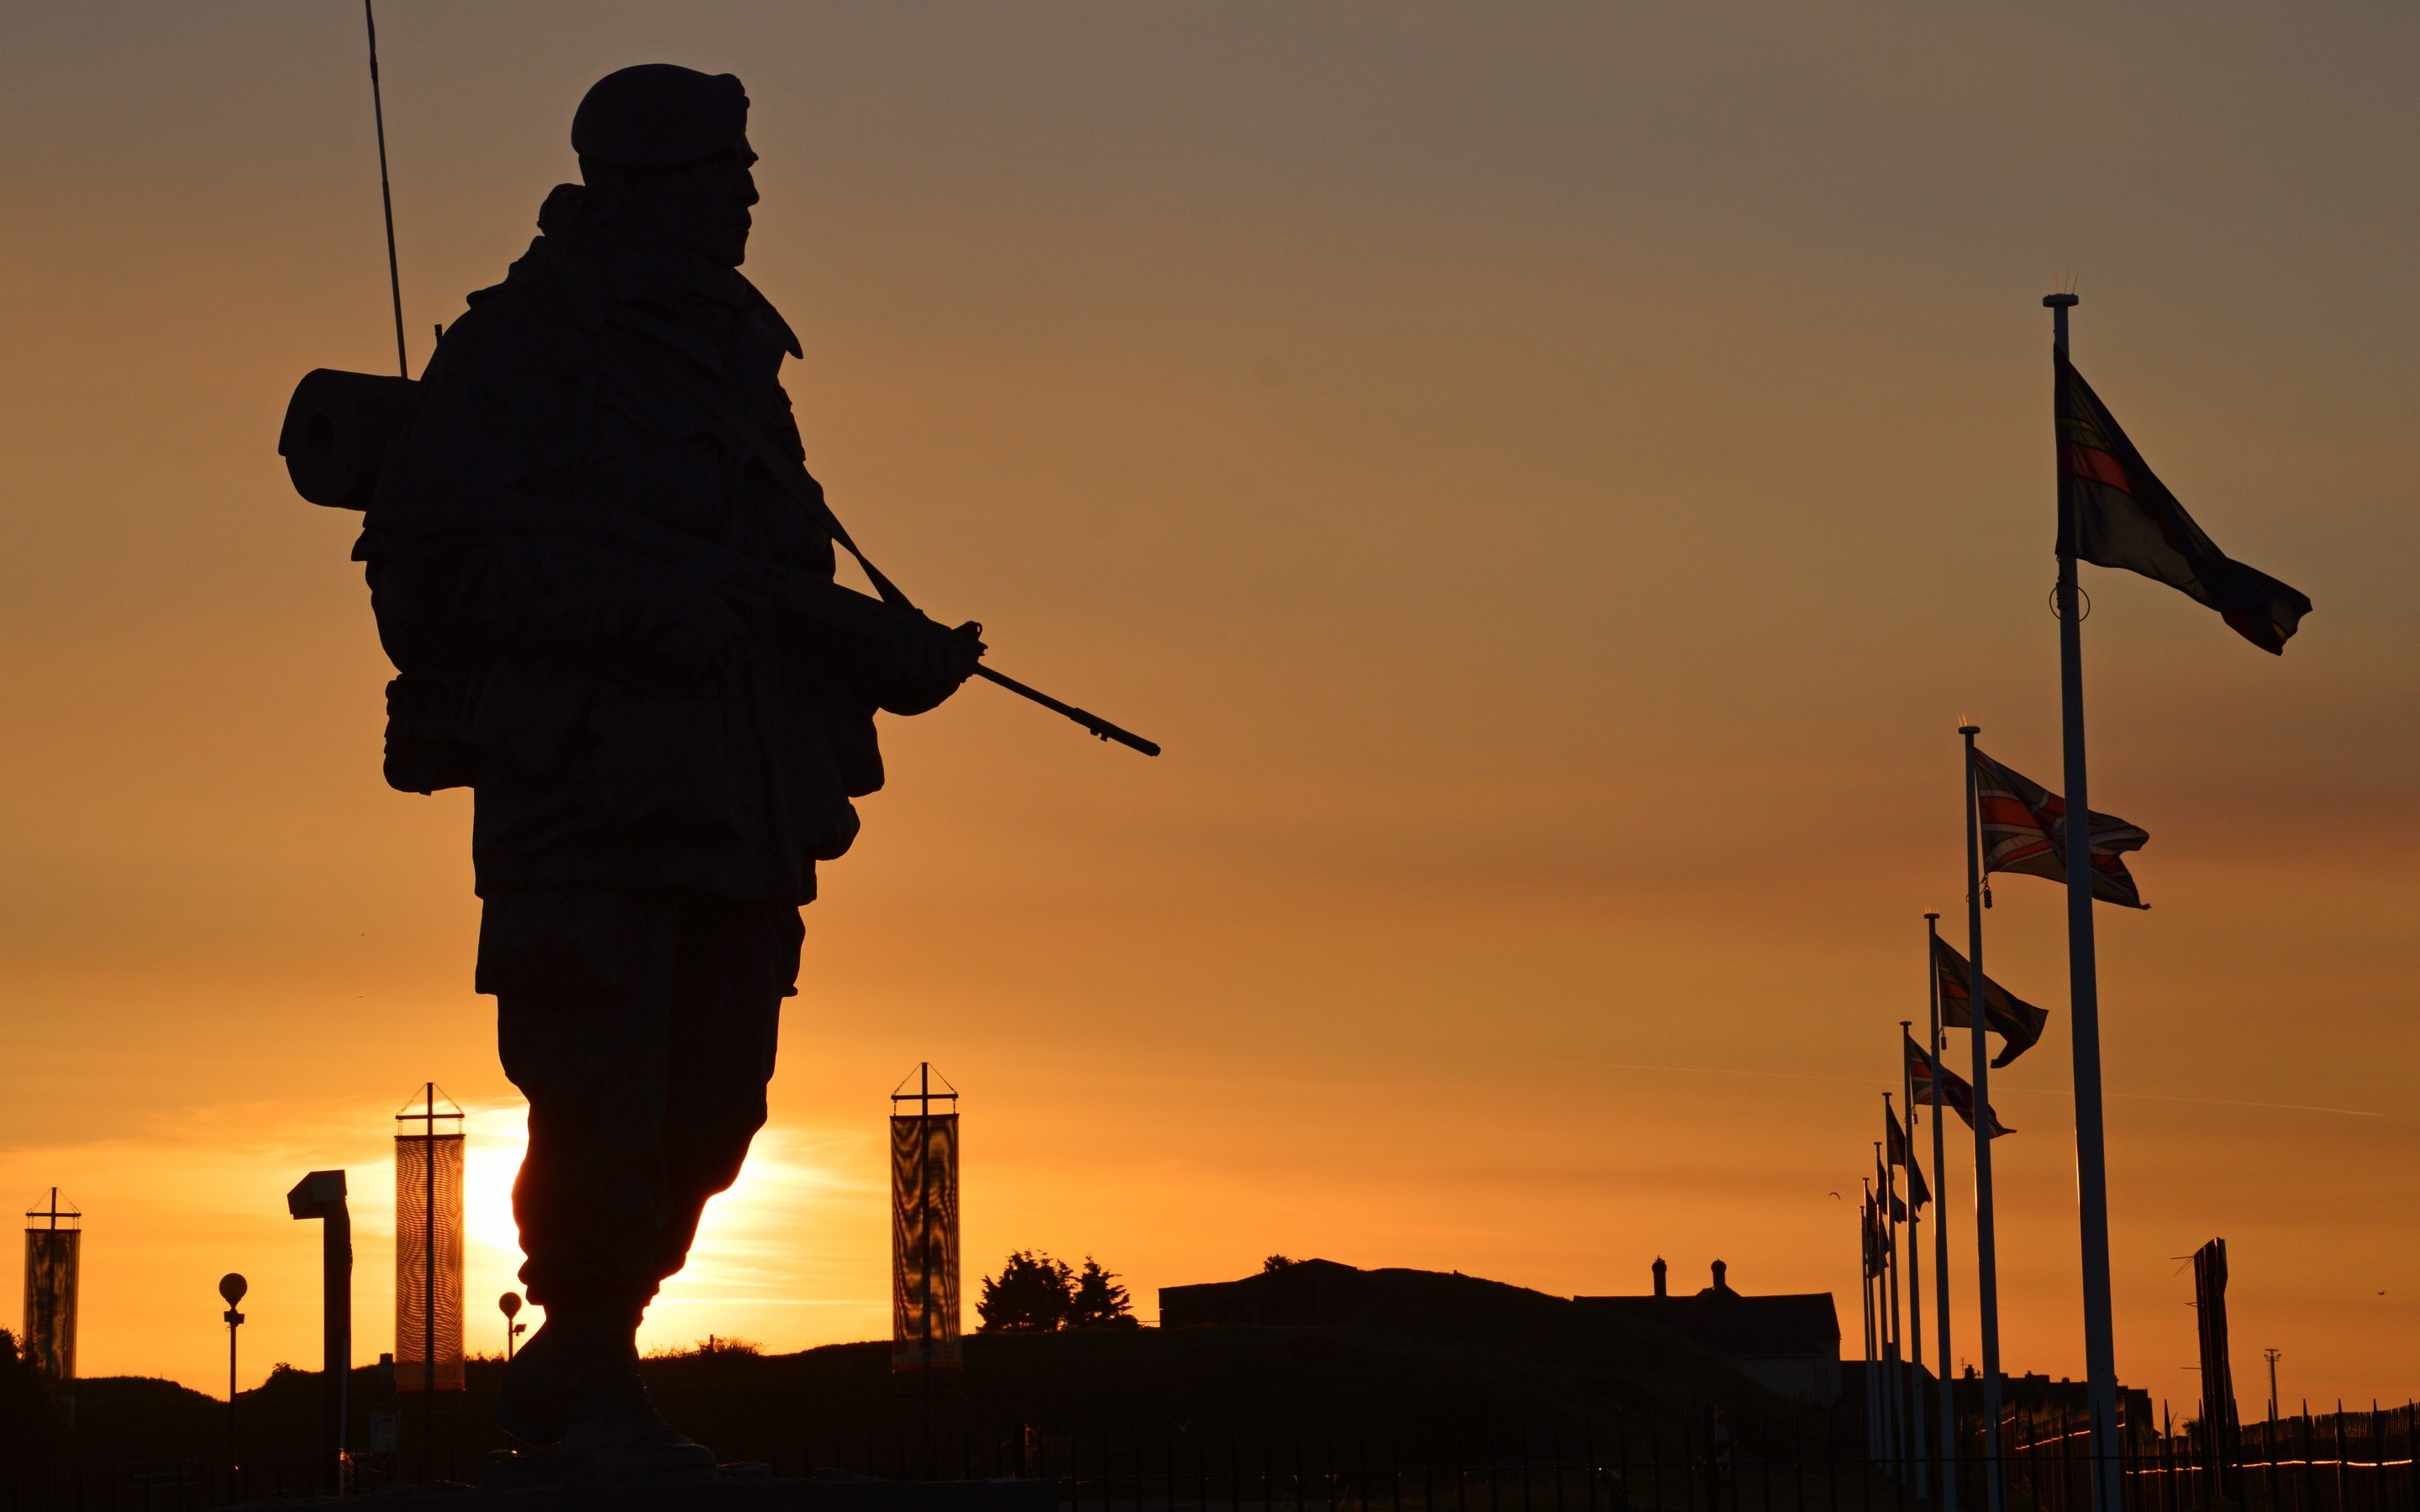 sun sunset silhouette commandos soldiers weapons equipment royal marines UK  military wallpaper